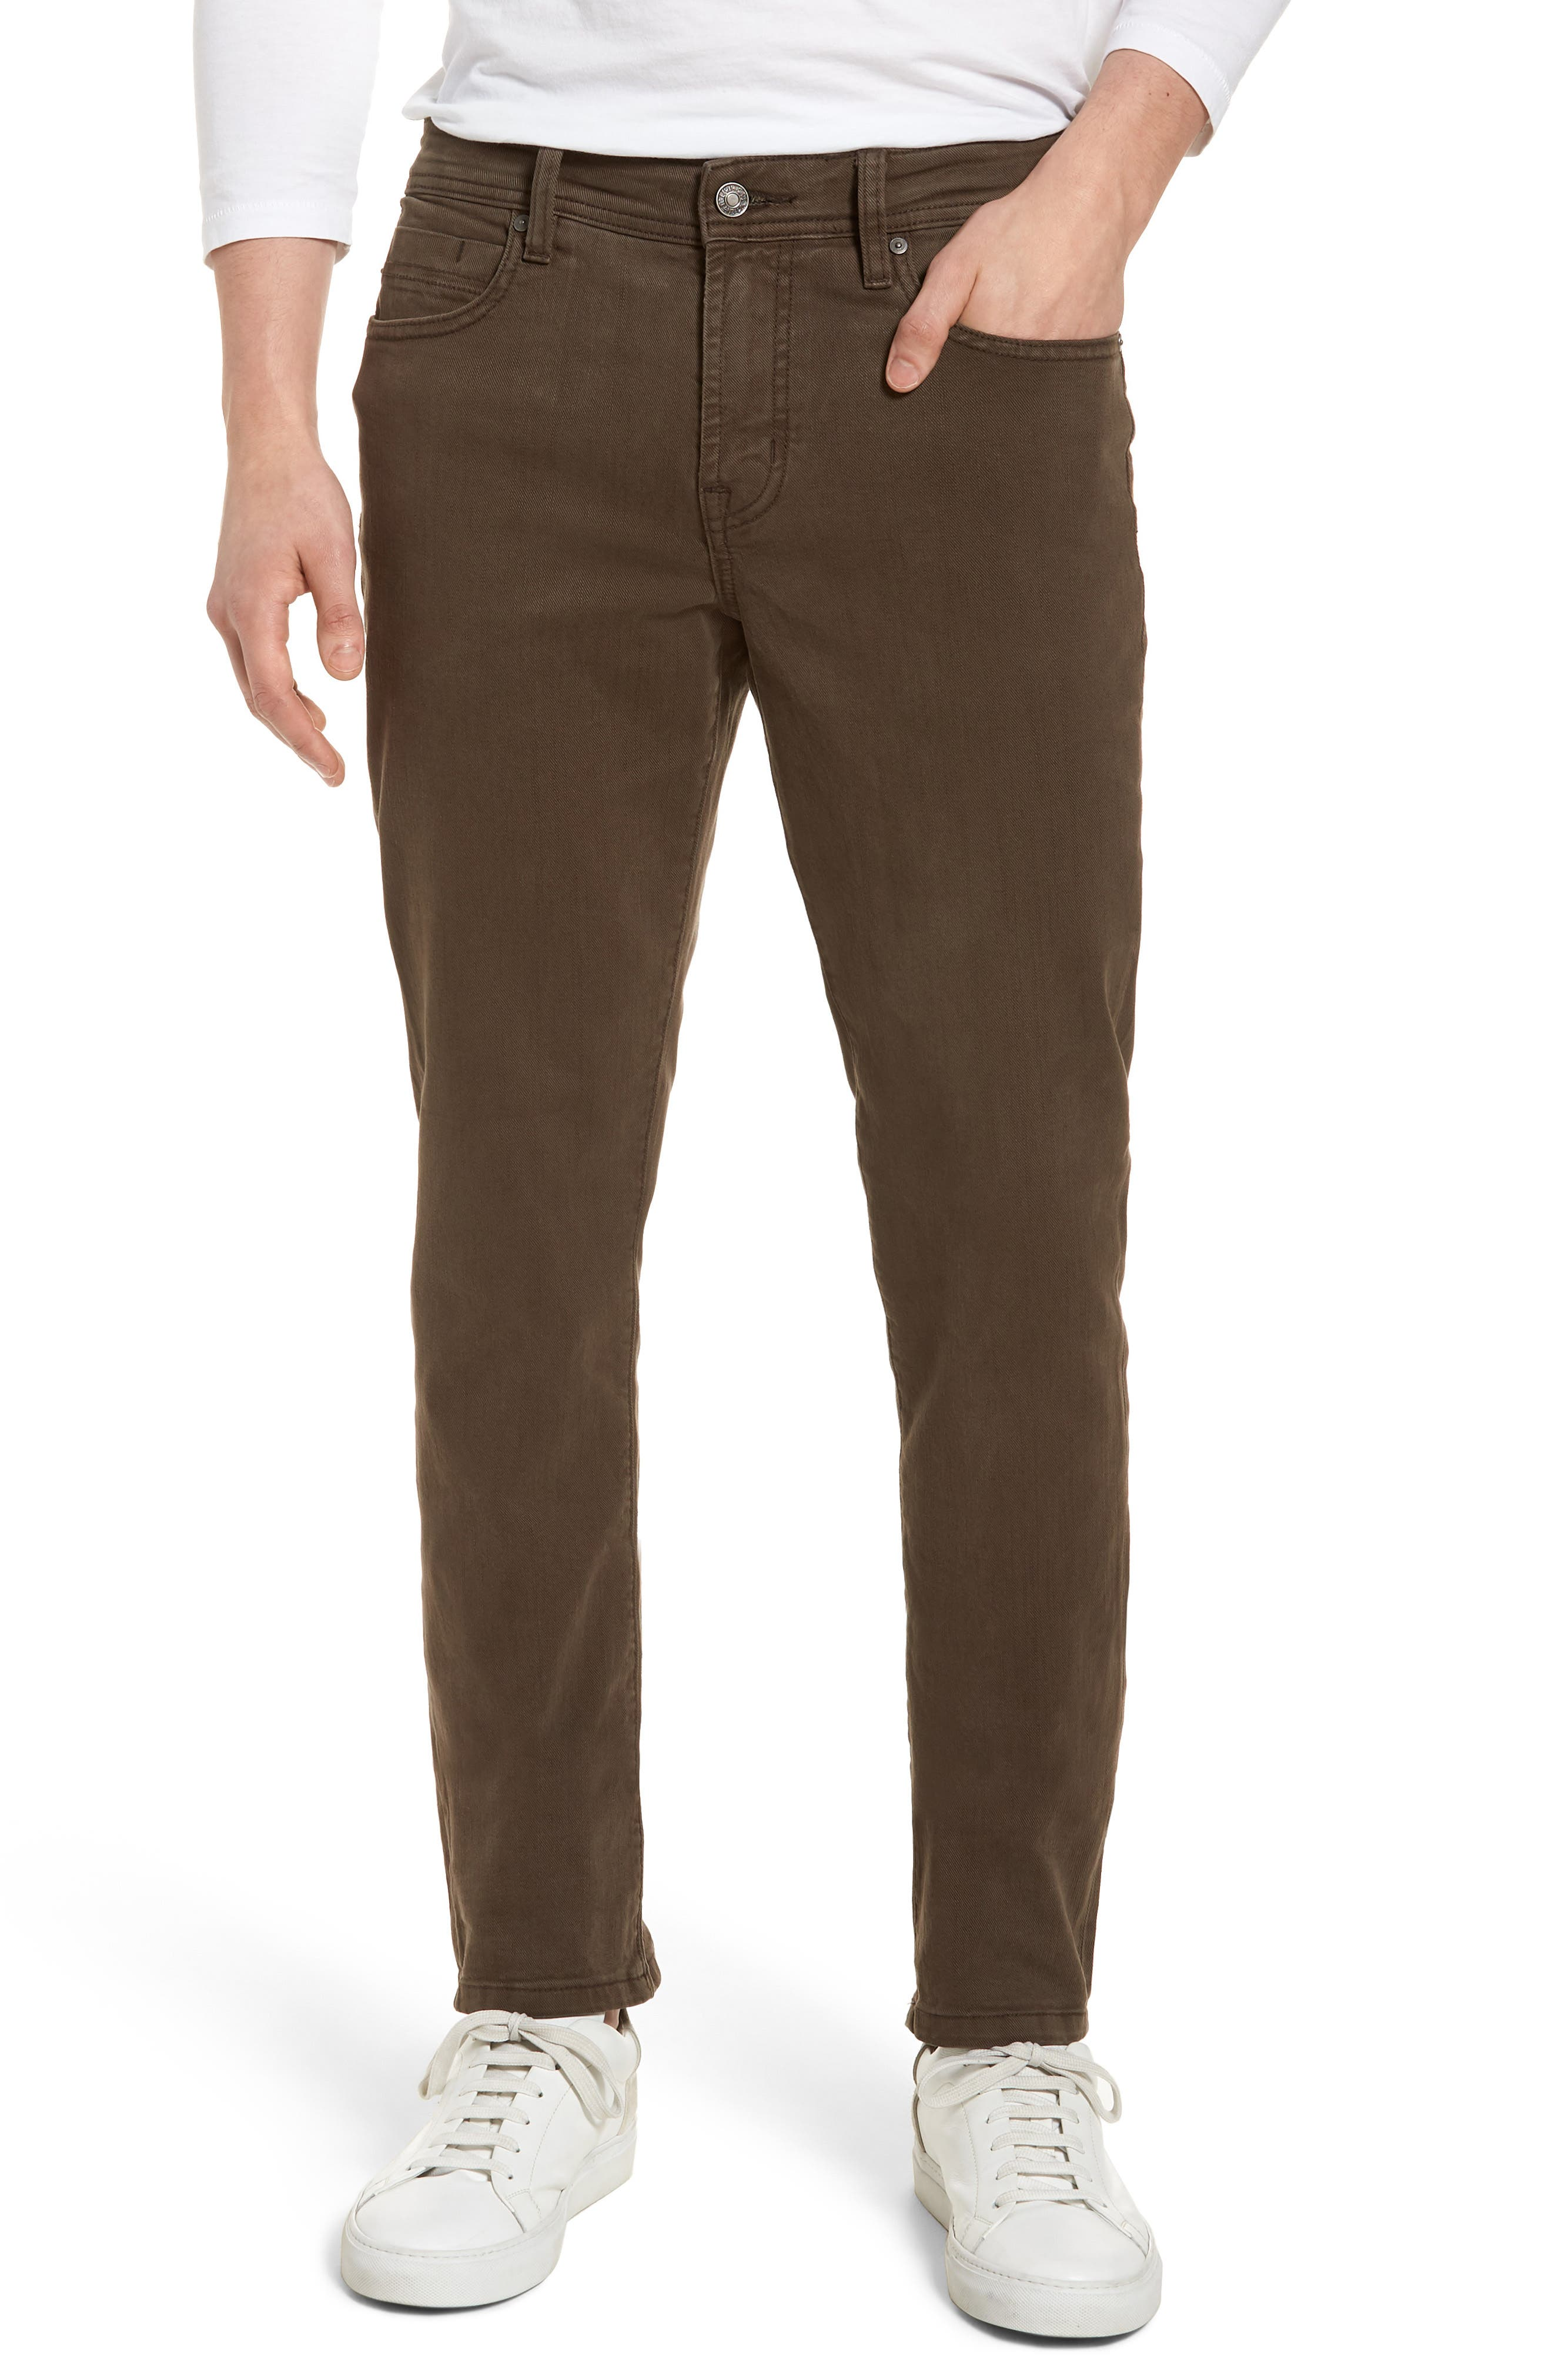 Jeans Co. Kingston Slim Straight Leg Jeans,                         Main,                         color, Tobacco Leaf